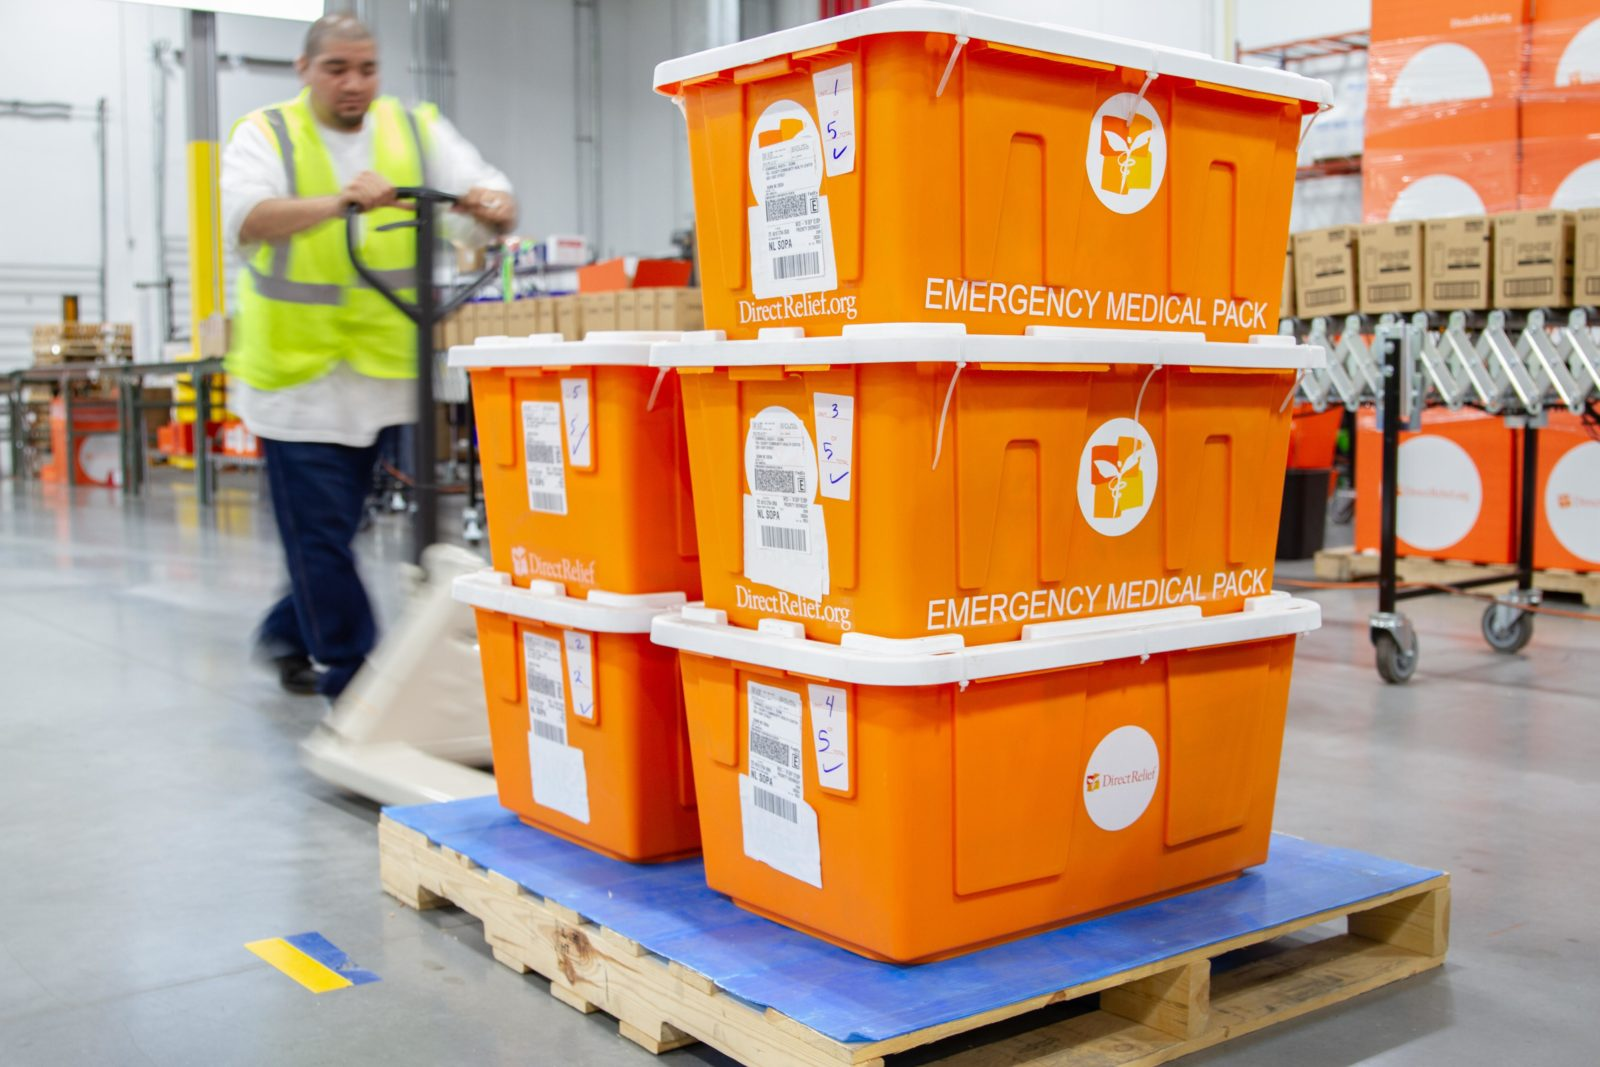 Emergency Medical Packs bound for Dunn, North Carolina, leave Direct Relief's warehouse in the aftermath of Hurricane Florence. (Lara Cooper/Direct Relief)